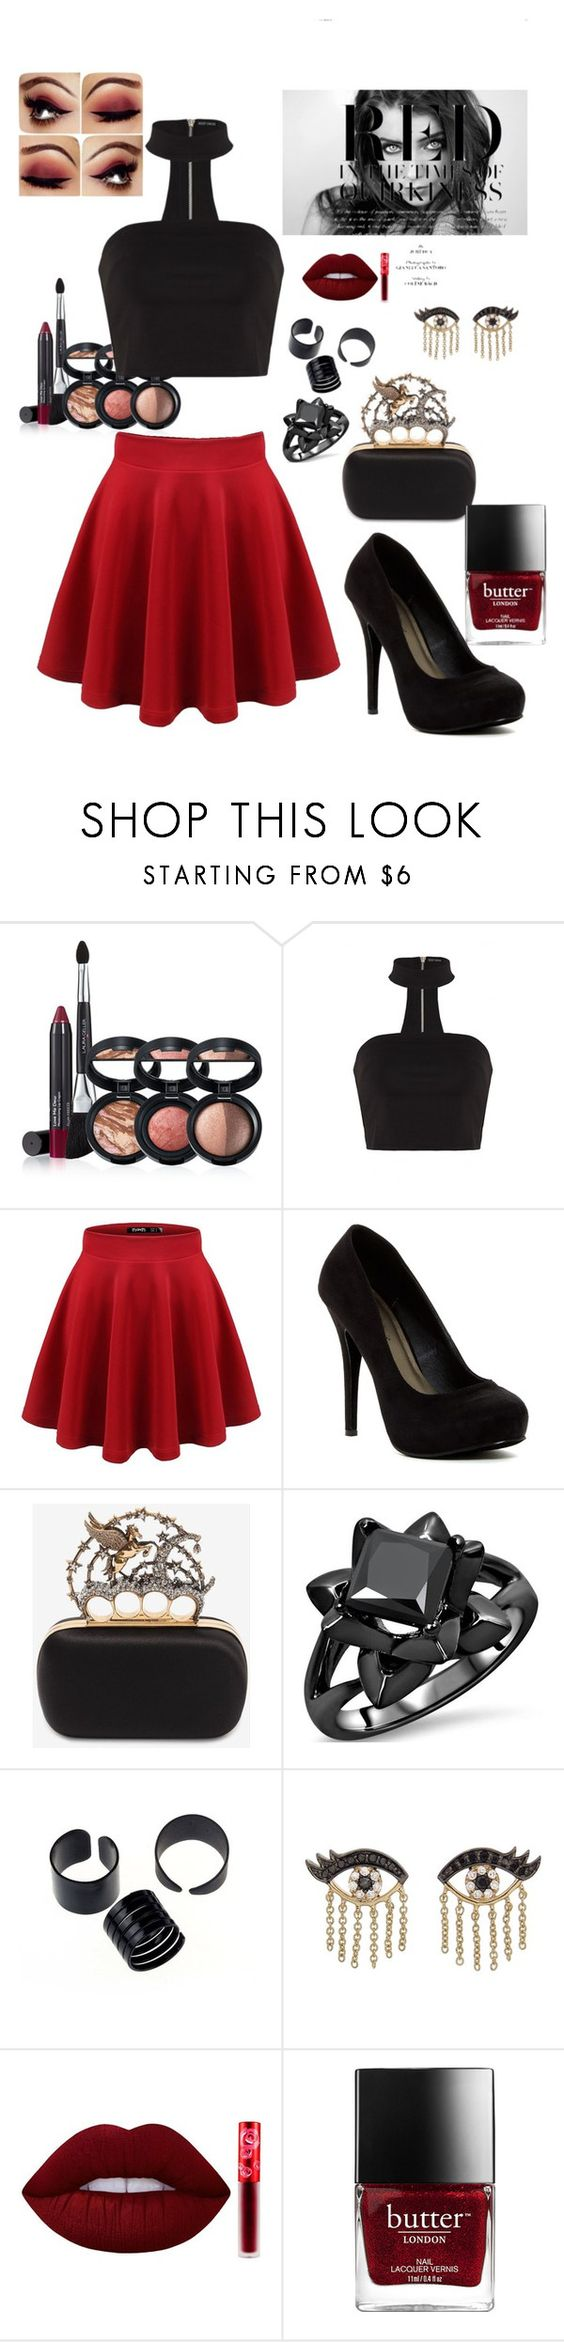 """I somehow find You and I collide"" by gothgirl87454 ❤ liked on Polyvore featuring Laura Geller, Michael Antonio, Alexander McQueen, Sydney Evan and Lime Crime"